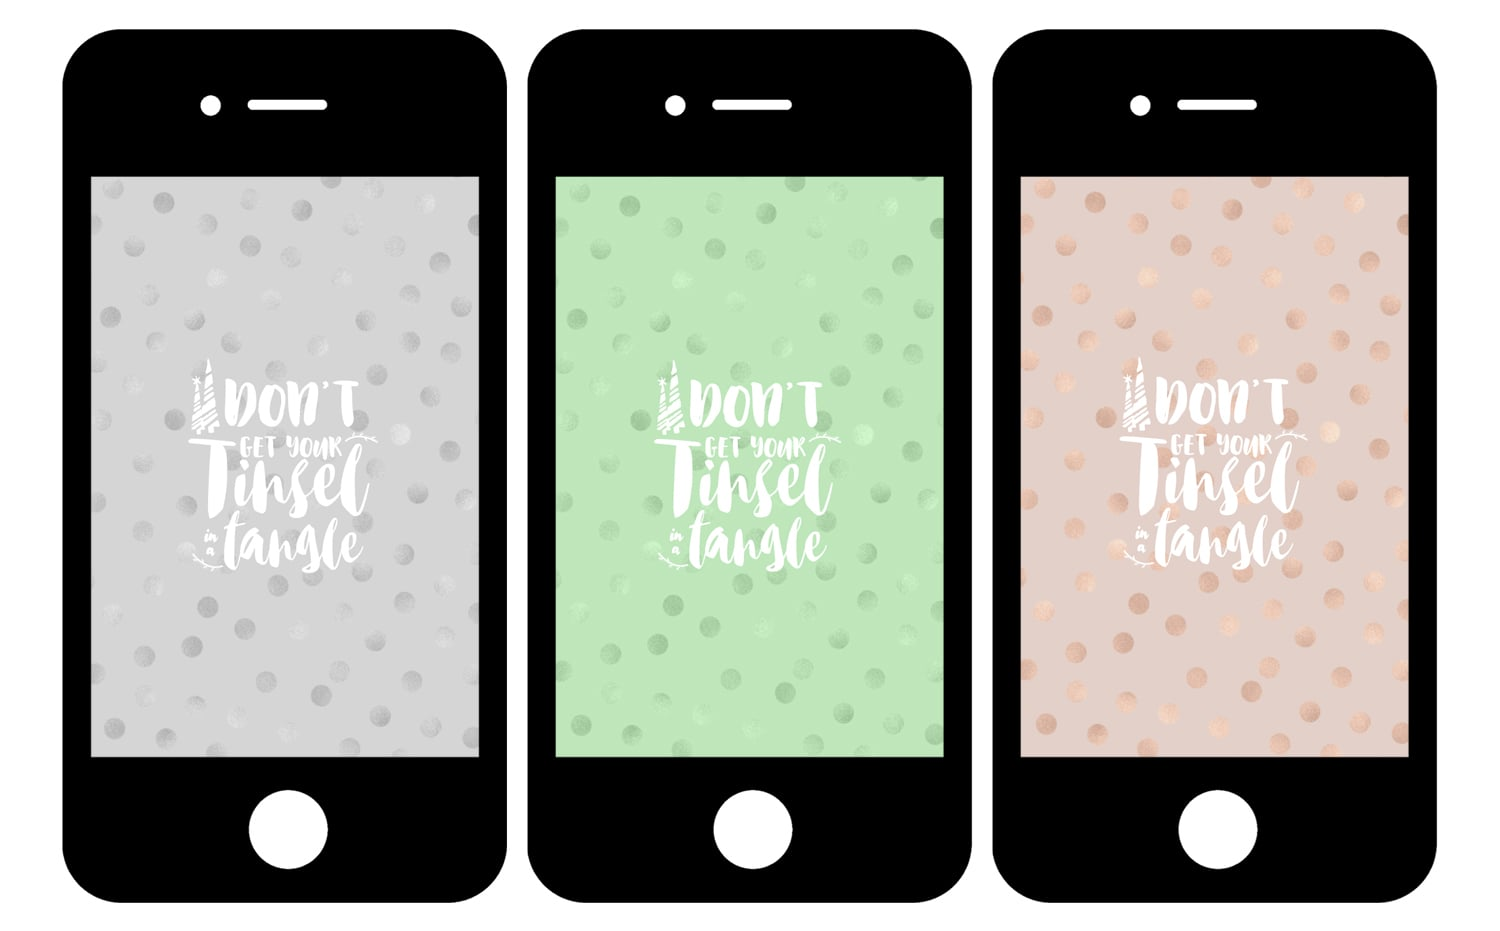 Free Holiday Phone Wallpapers: Don't Get Your Tinsel in a Tangle • Little Gold Pixel